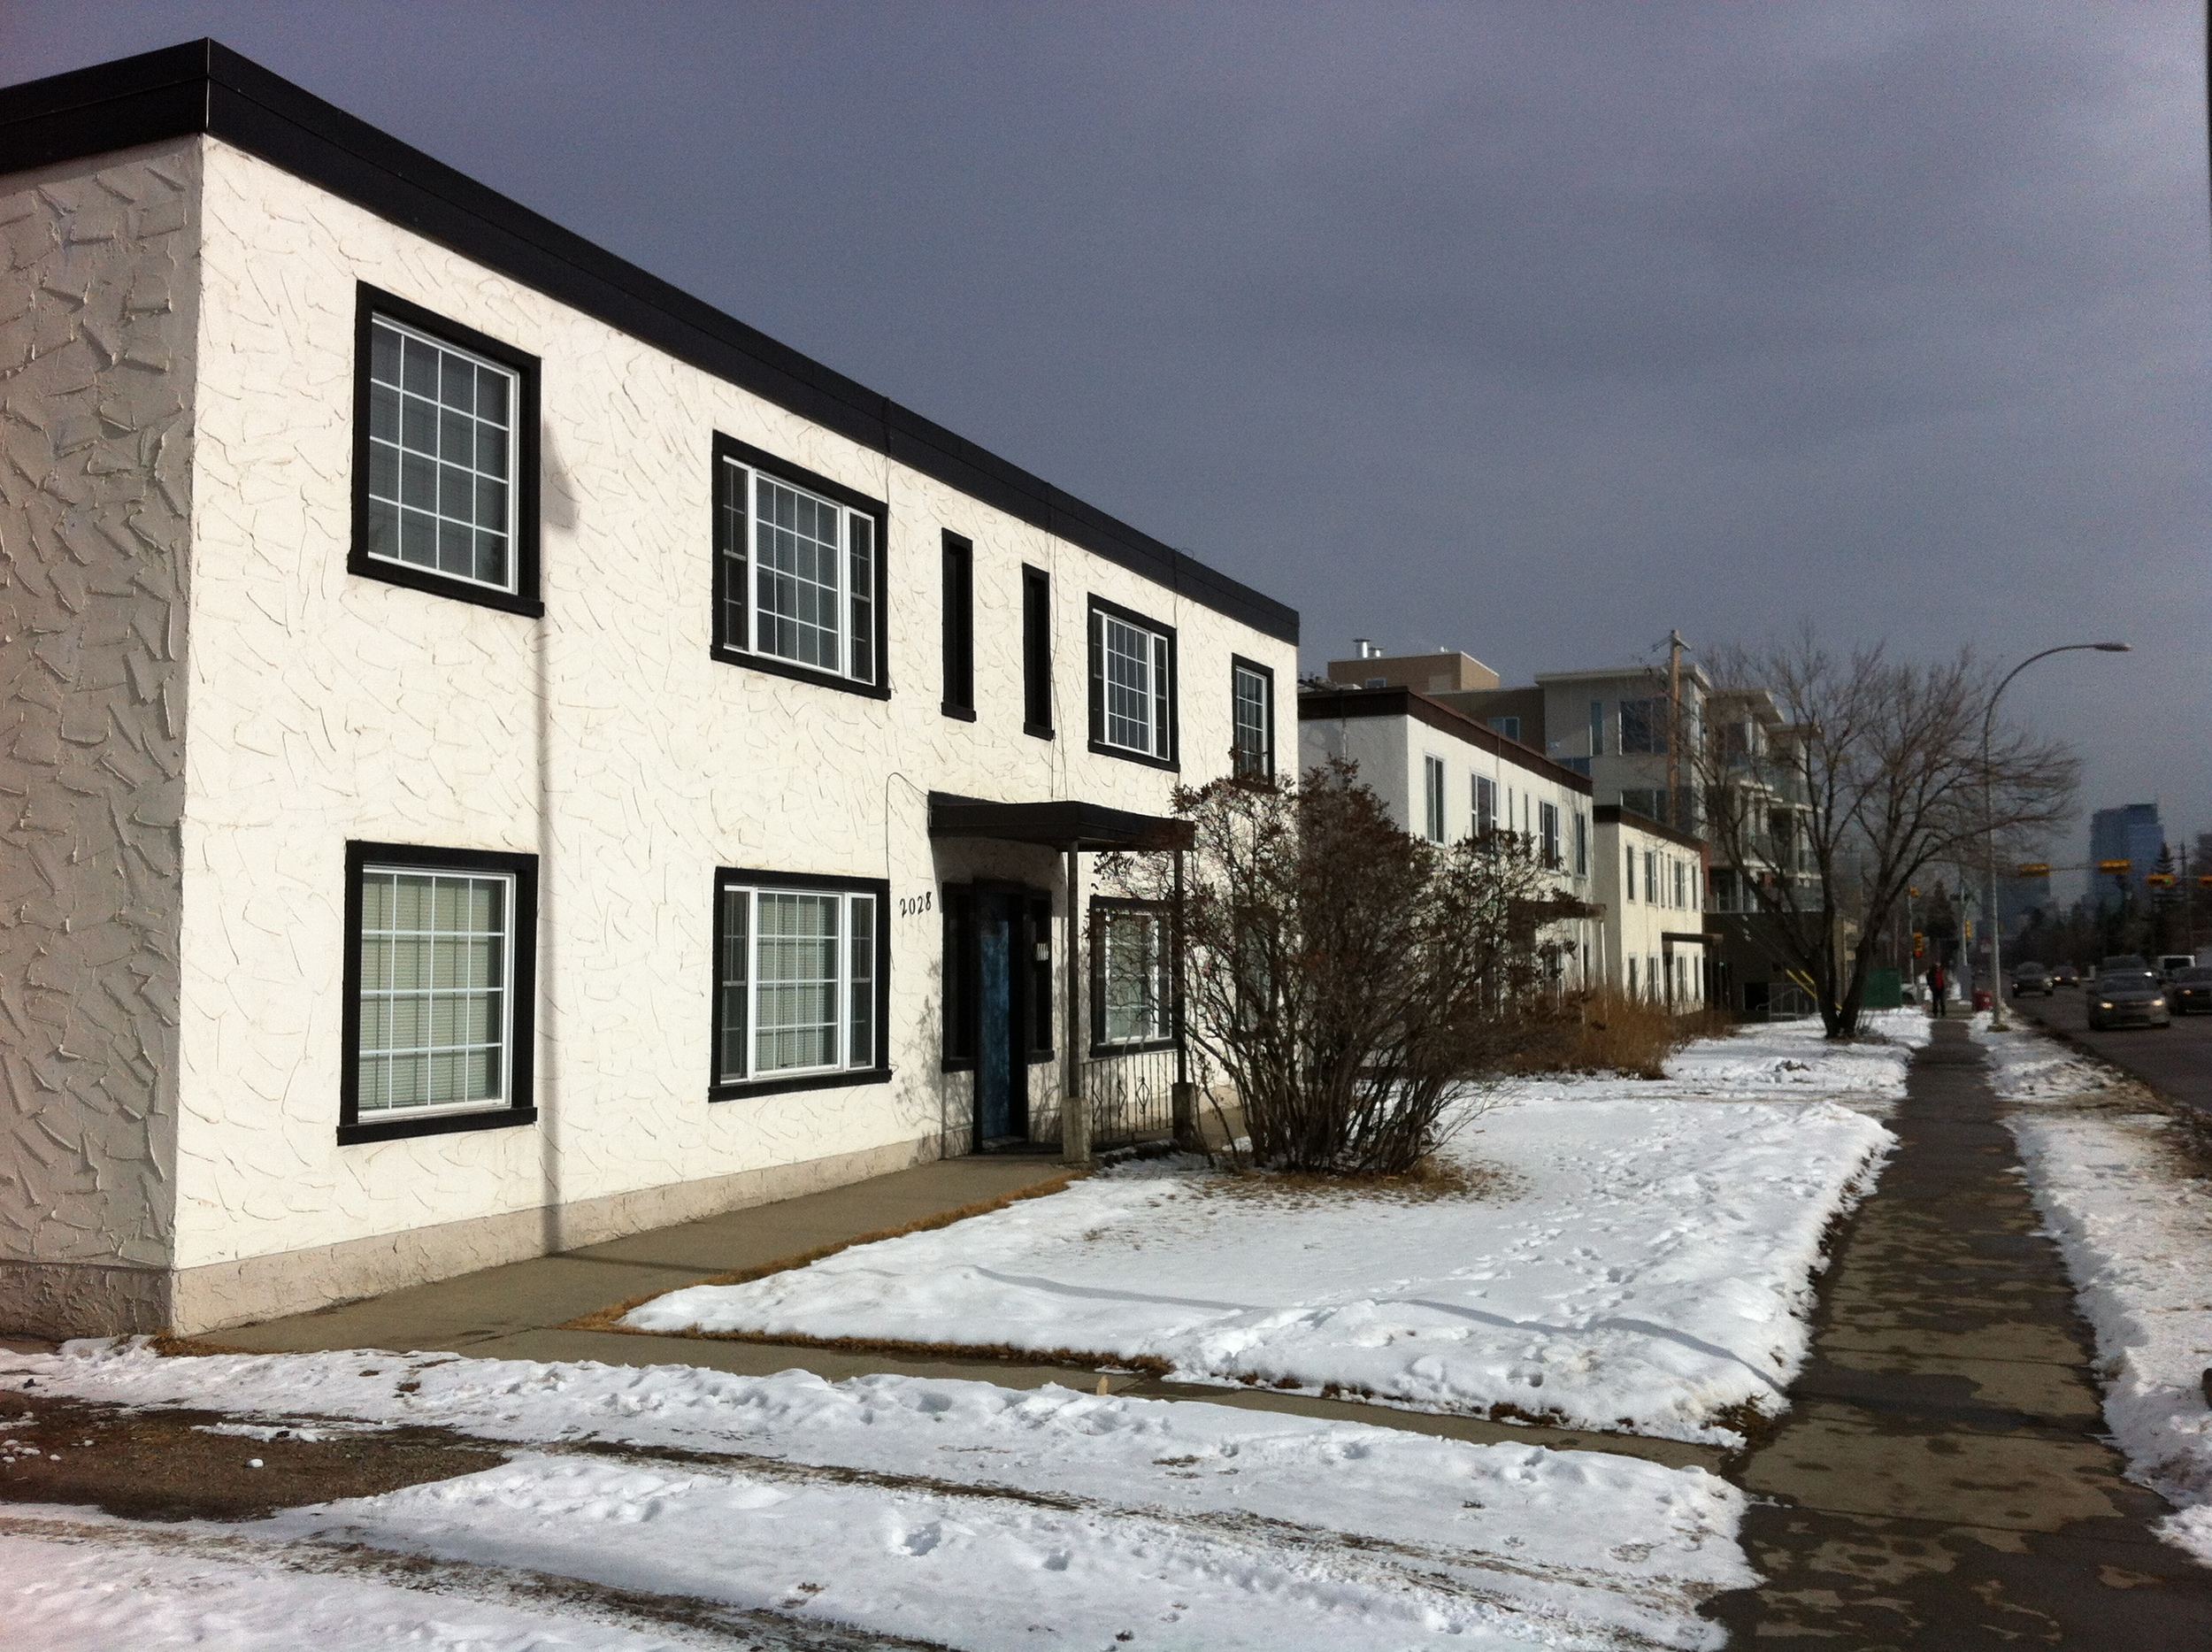 Many of the main street being studied have fragmented ownership like these apartments along Kensington Road, making it difficult to assemble sufficient land for a new mixed-use development.